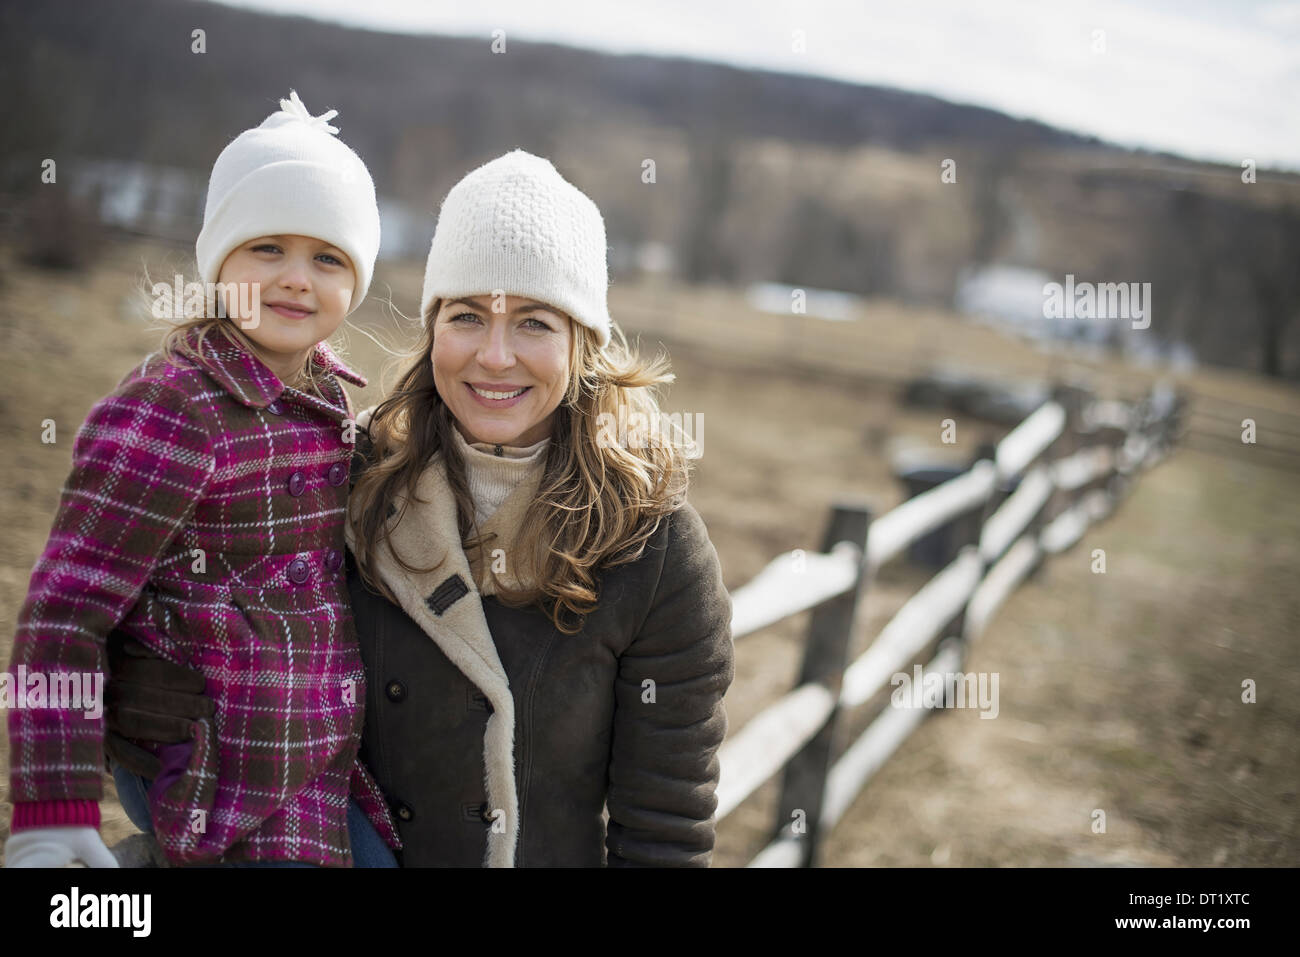 A woman and child walking along a path hand in hand - Stock Image